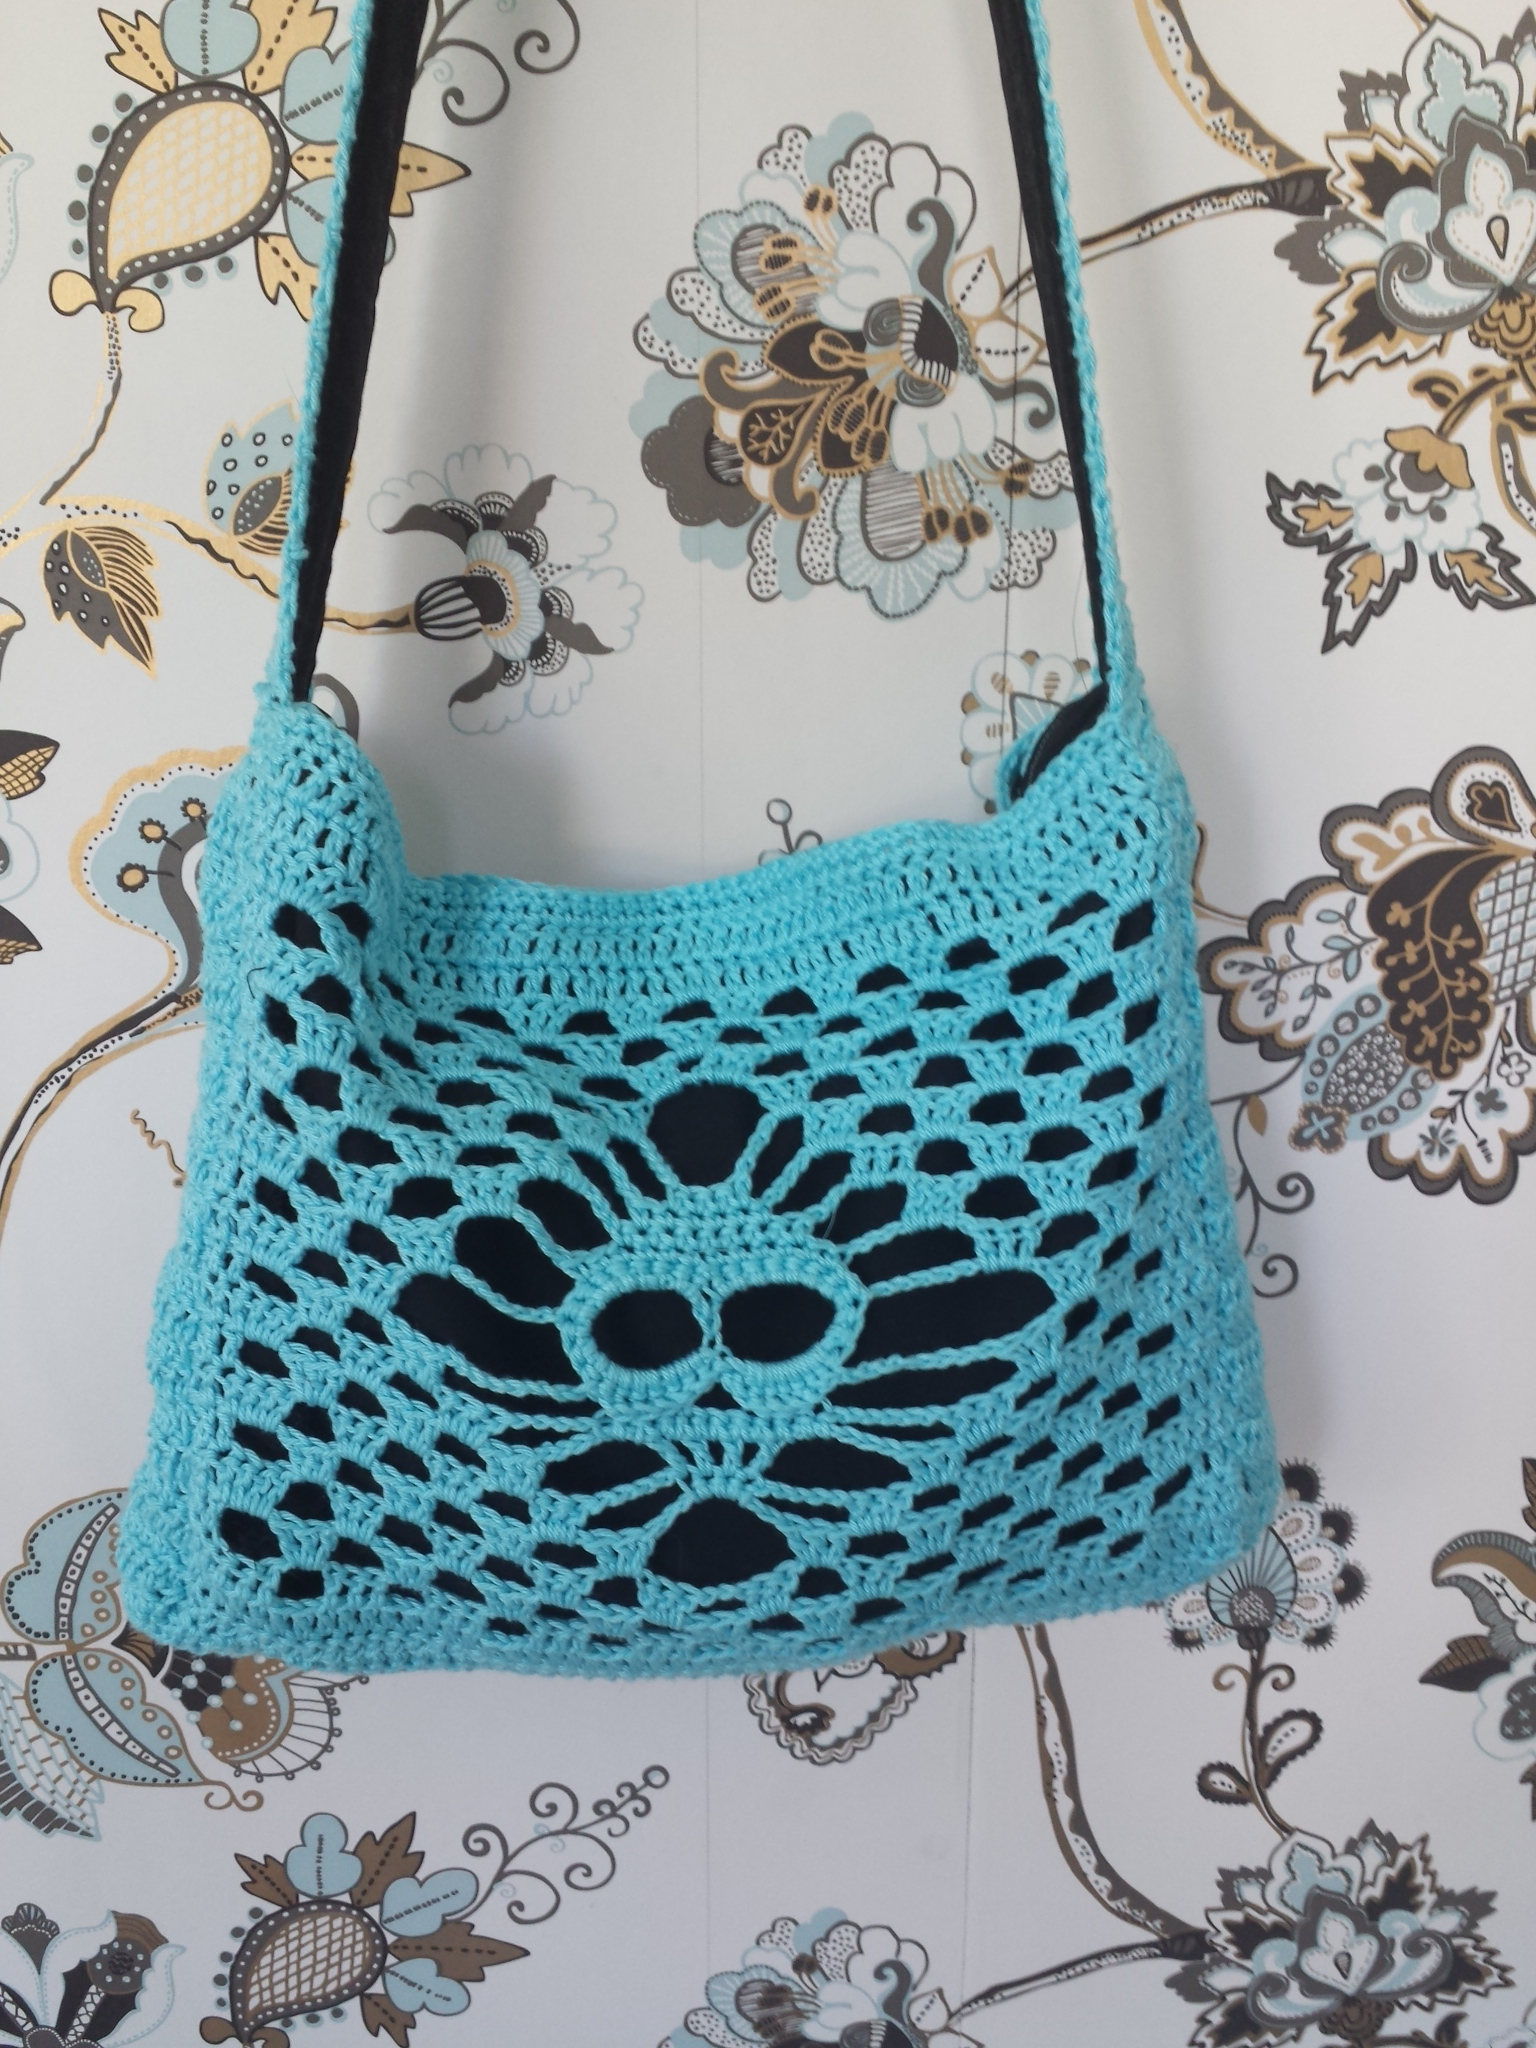 Lace Skull Bag Stitches And Supper